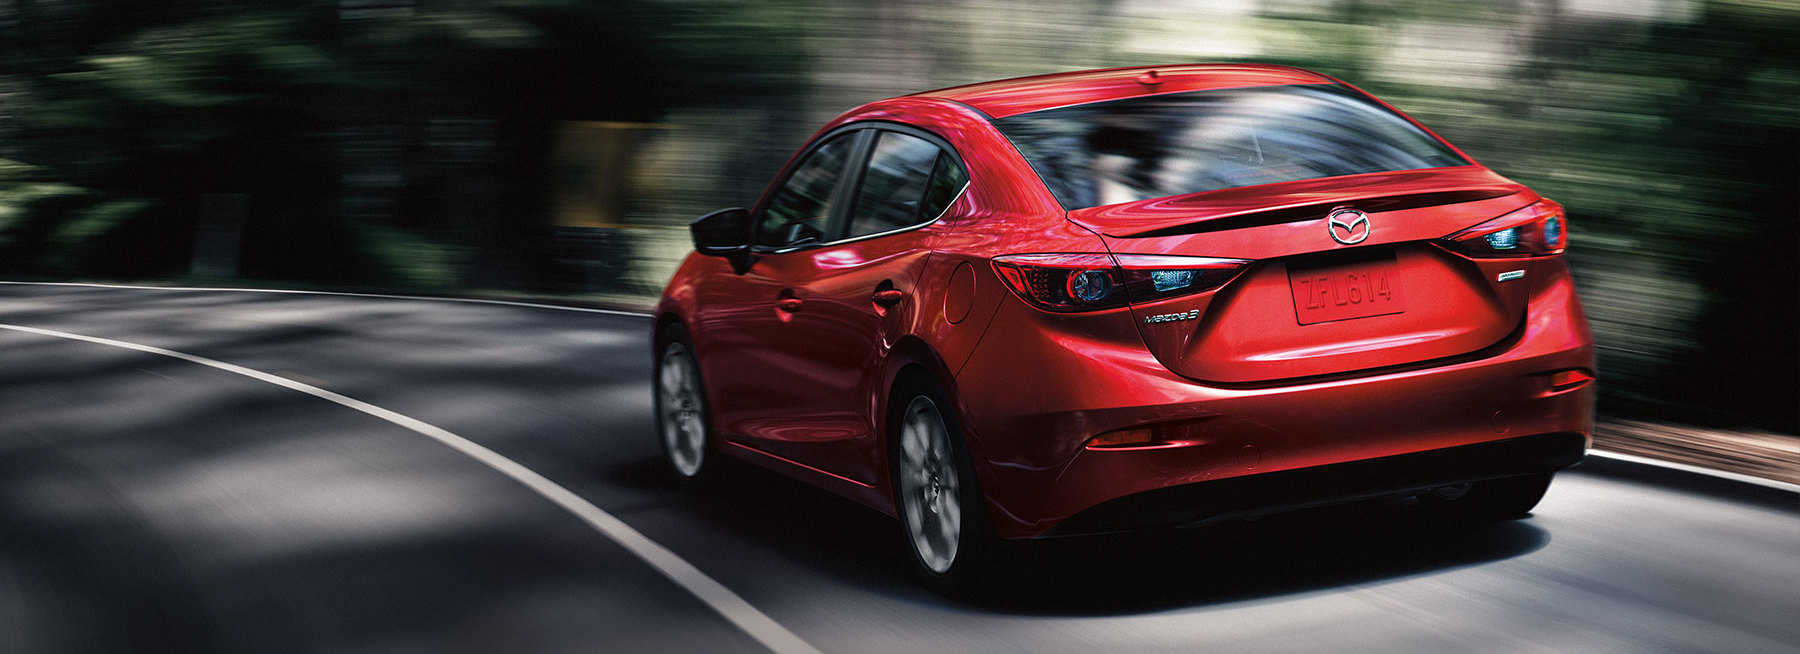 Certified Pre-Owned MAZDA Vehicles for Sale near Columbia, SC